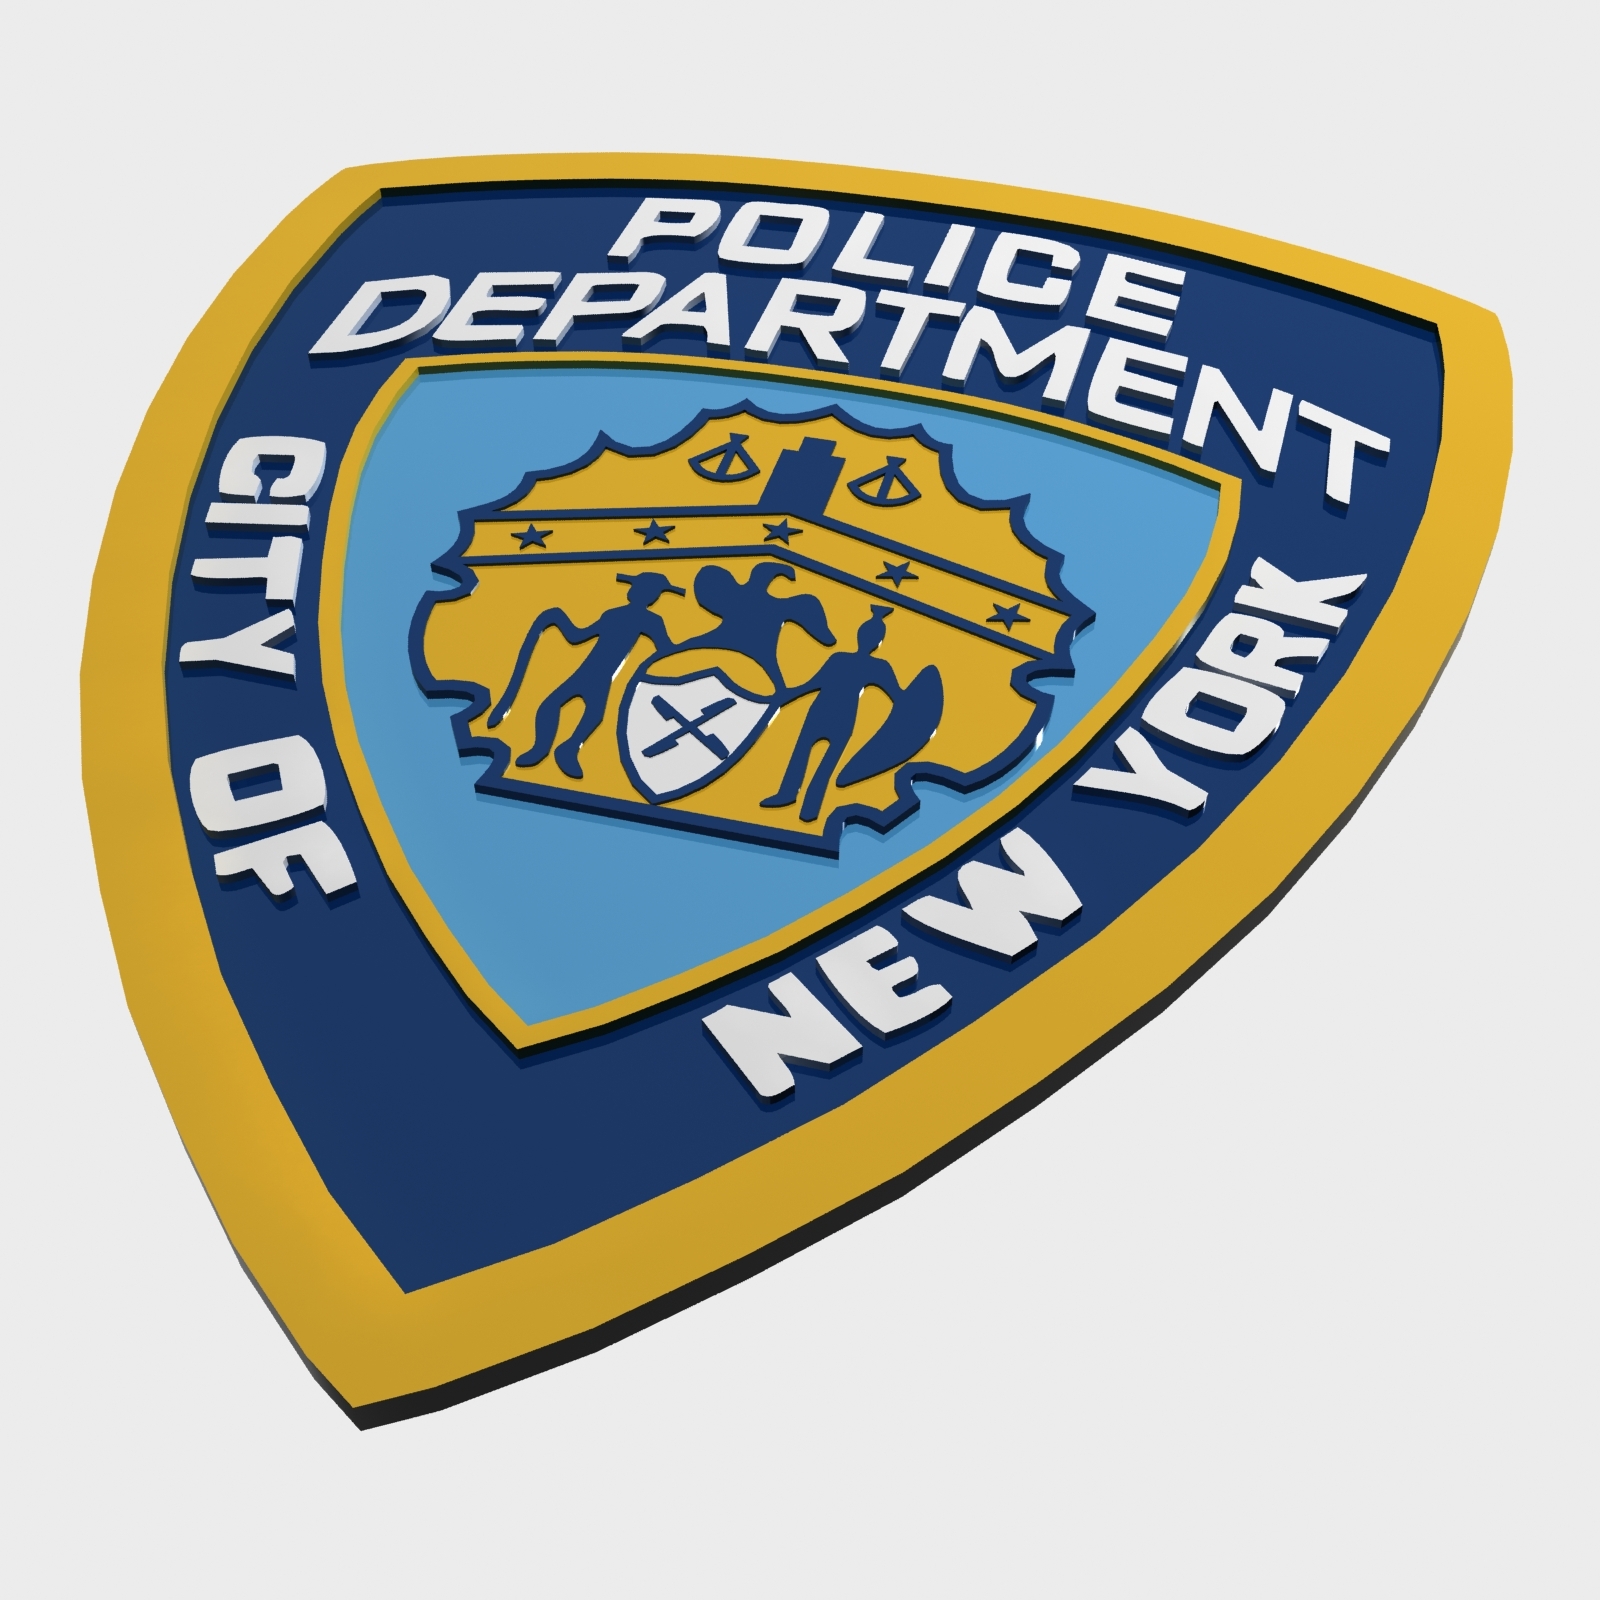 NYPD Police Department Logo By Polygon3d